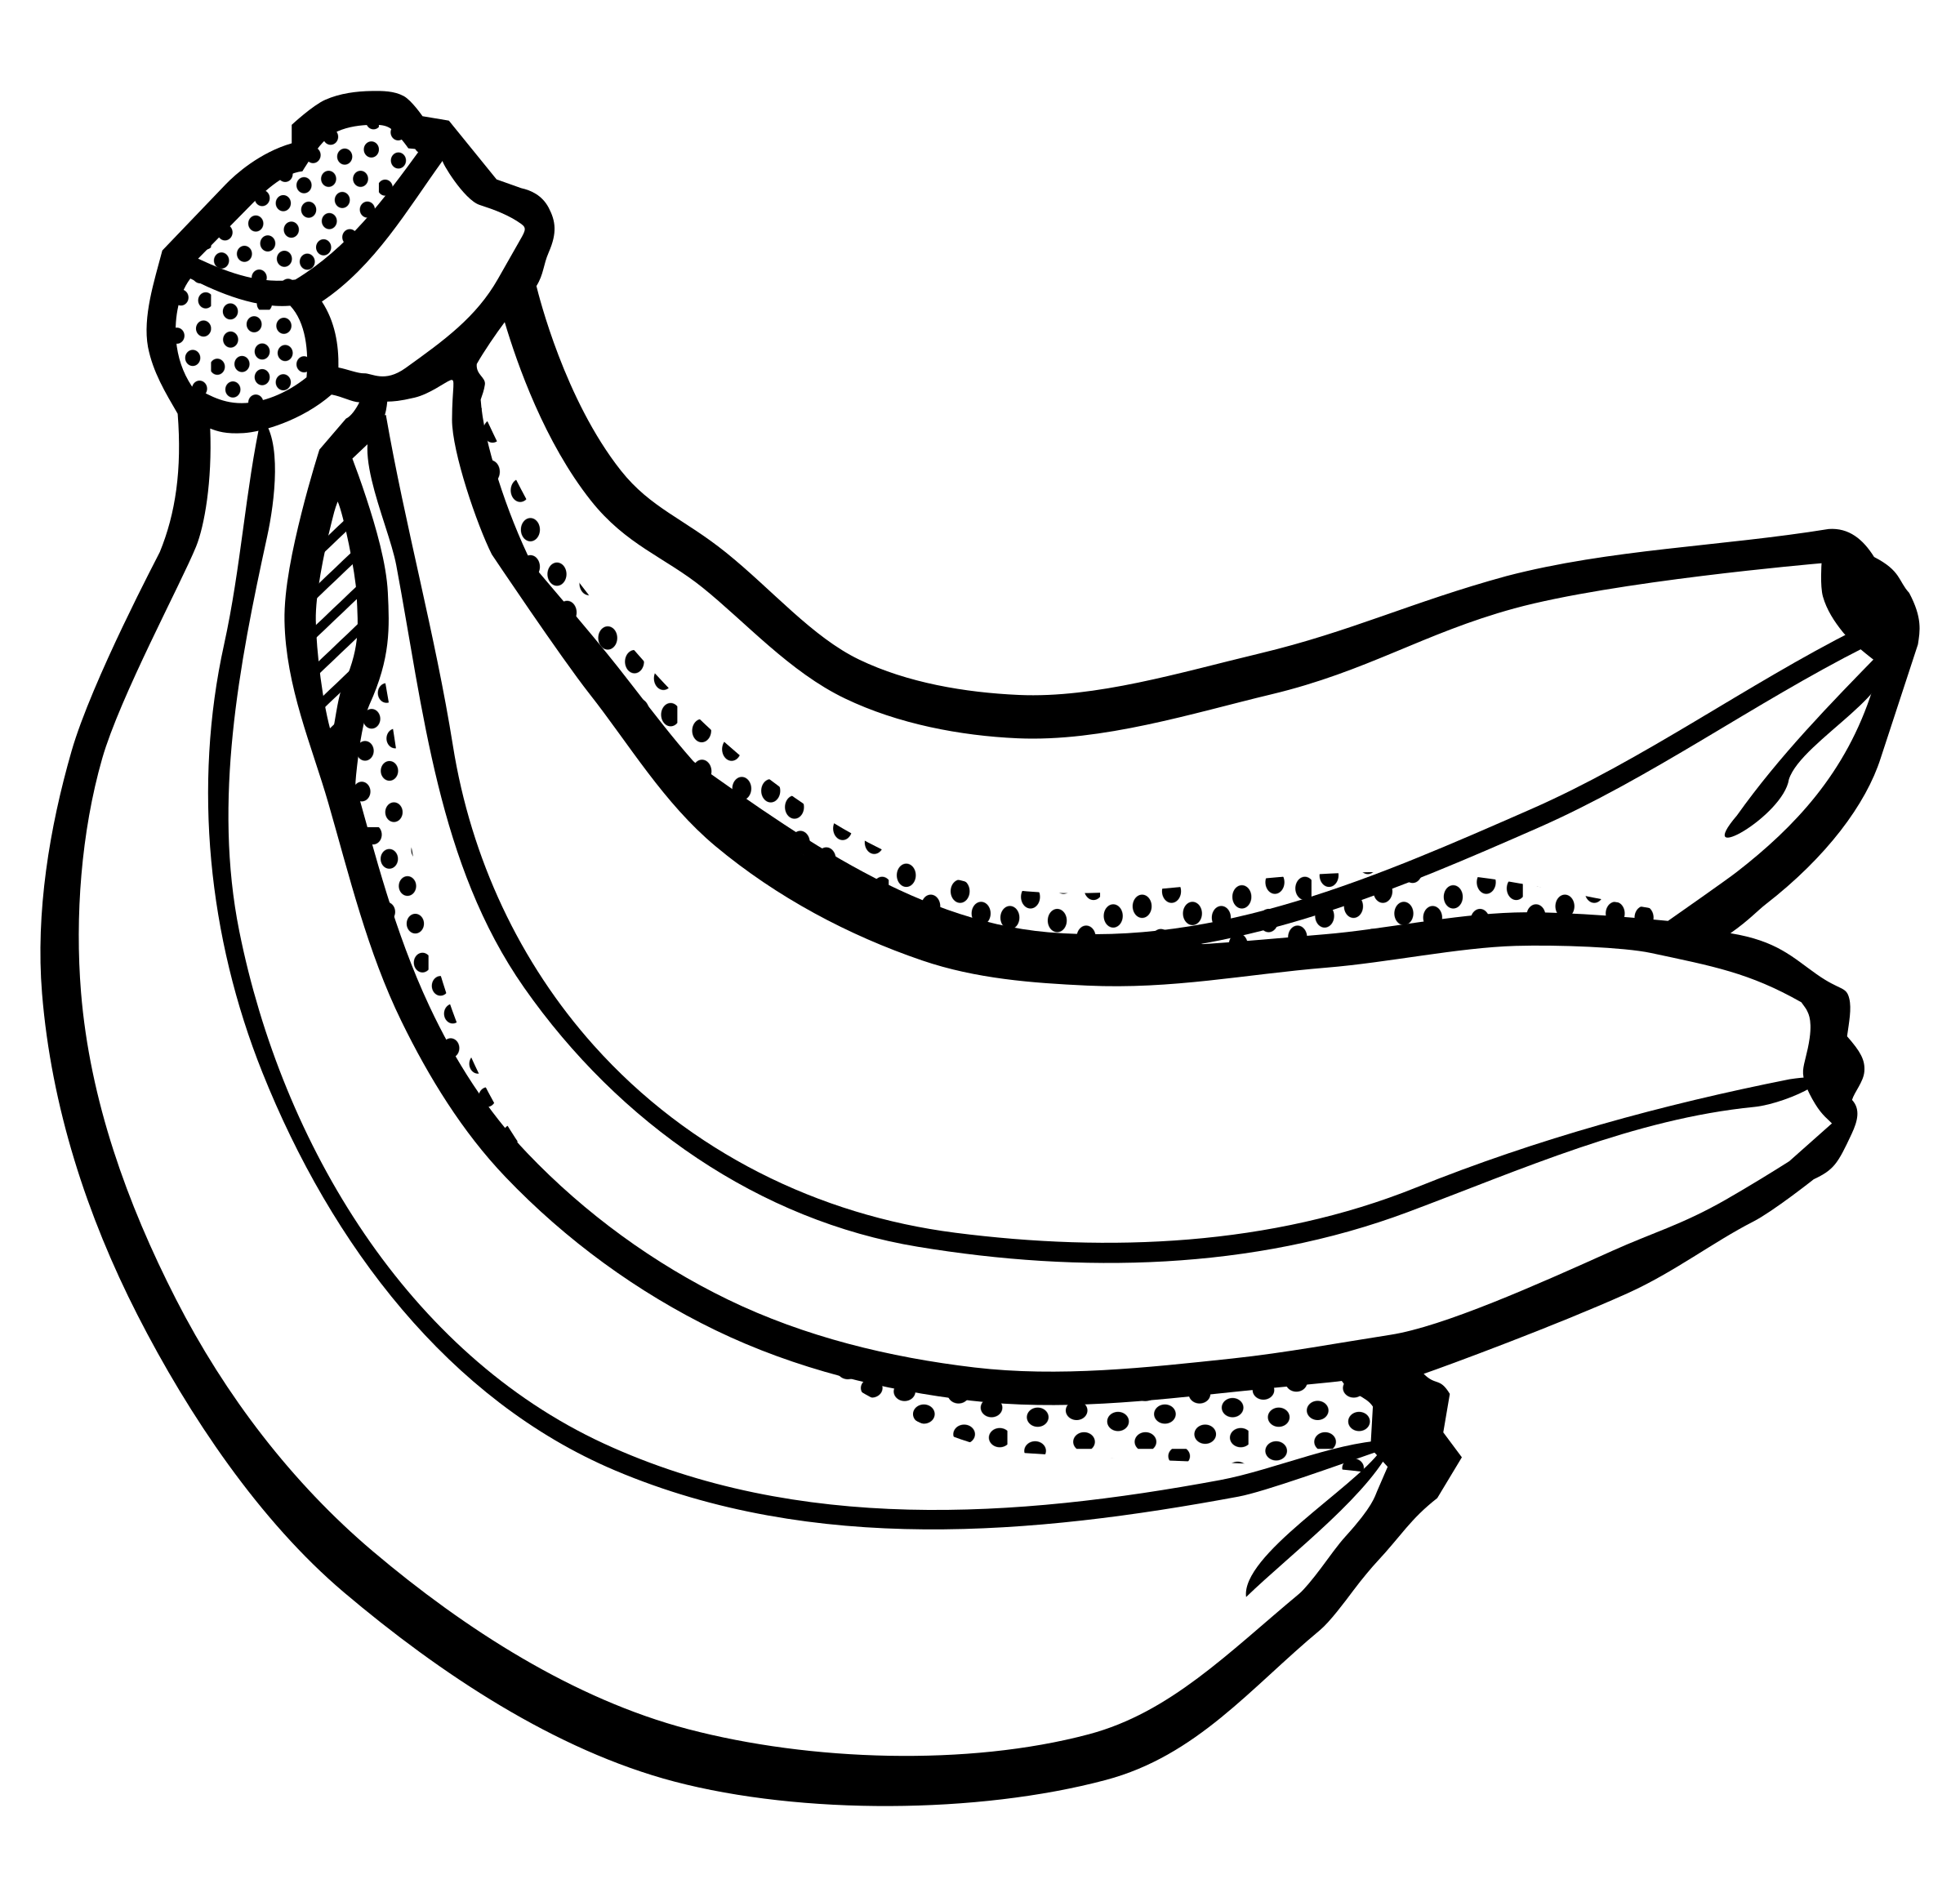 Clipart Of Banana Black And White.